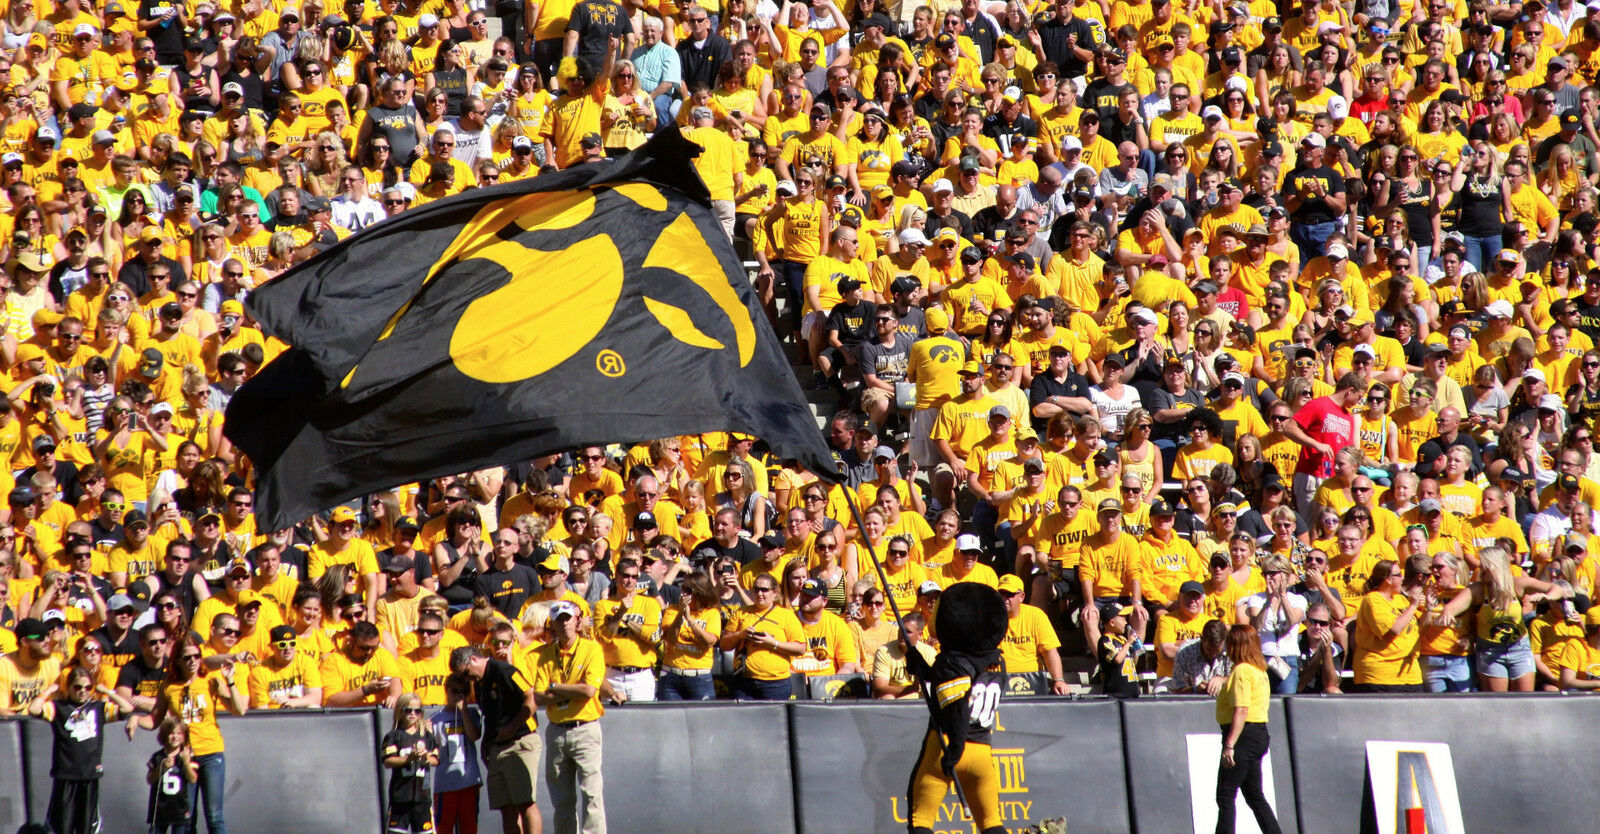 PARKING PASSES ONLY Rutgers Scarlet Knights at Iowa Hawkeyes Football